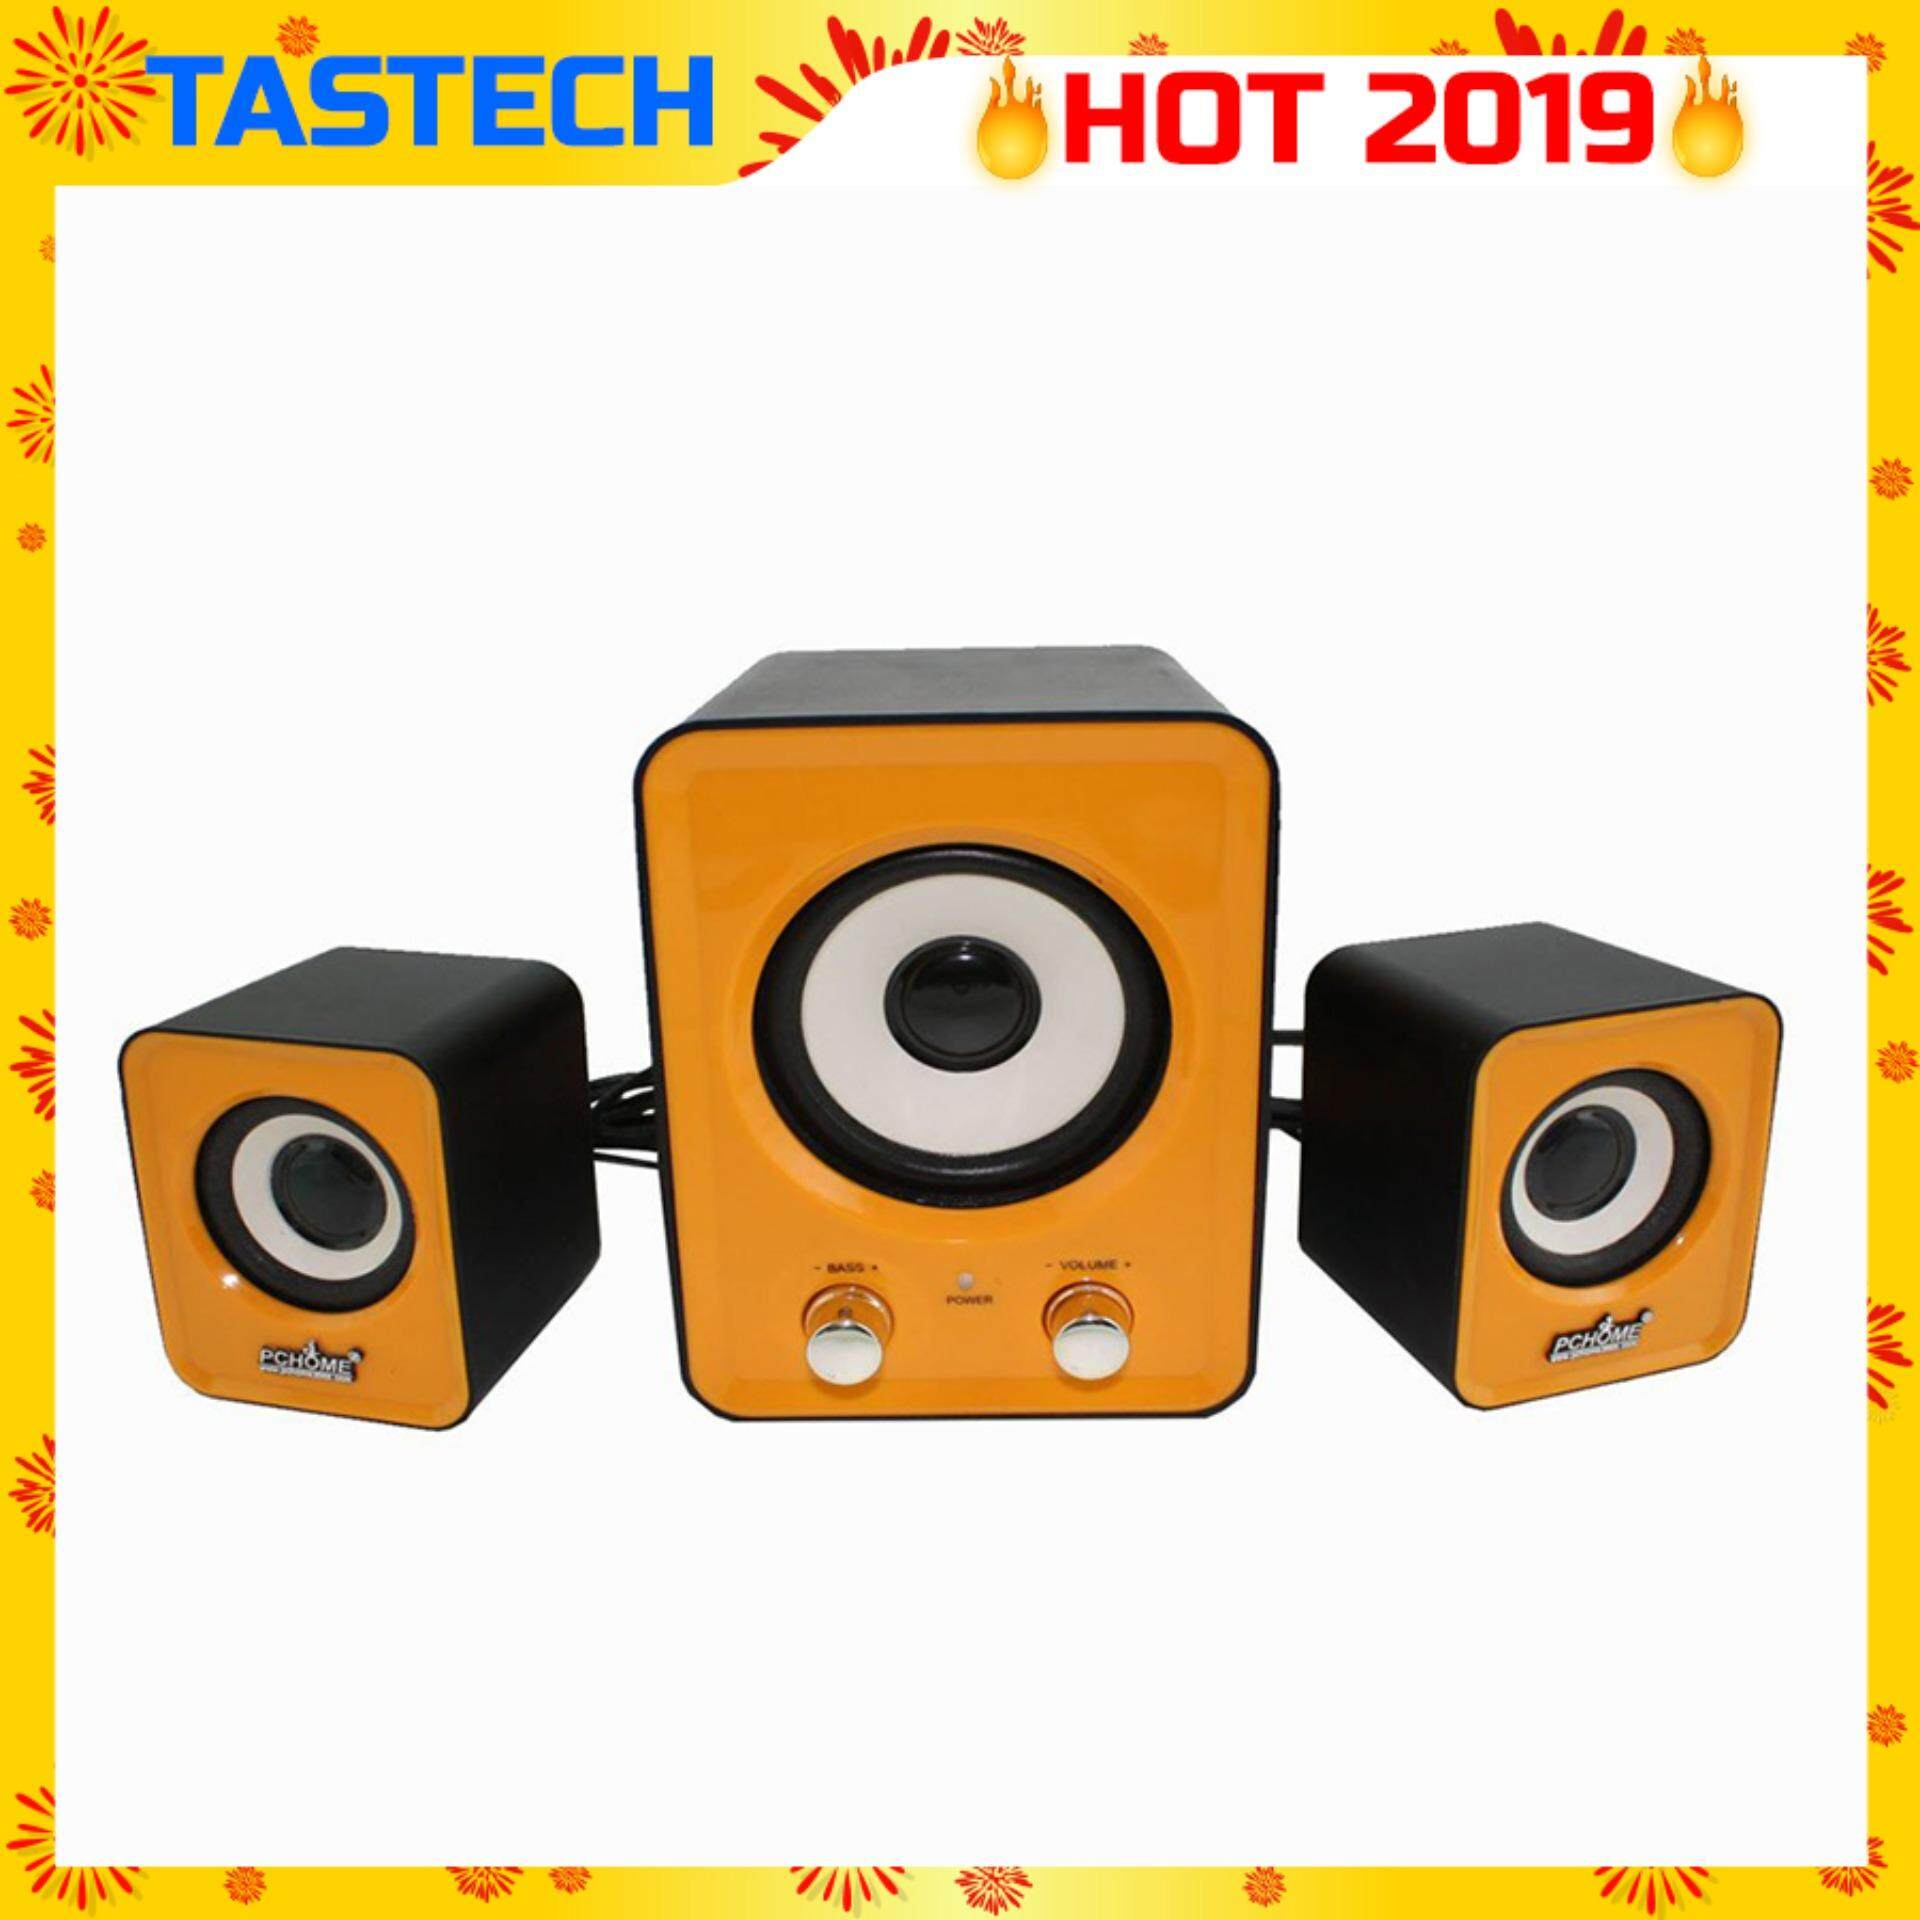 Tastech BF-100 3d sound Technology 2.1 USB port Multimedia Speaker (Yellow) Malaysia